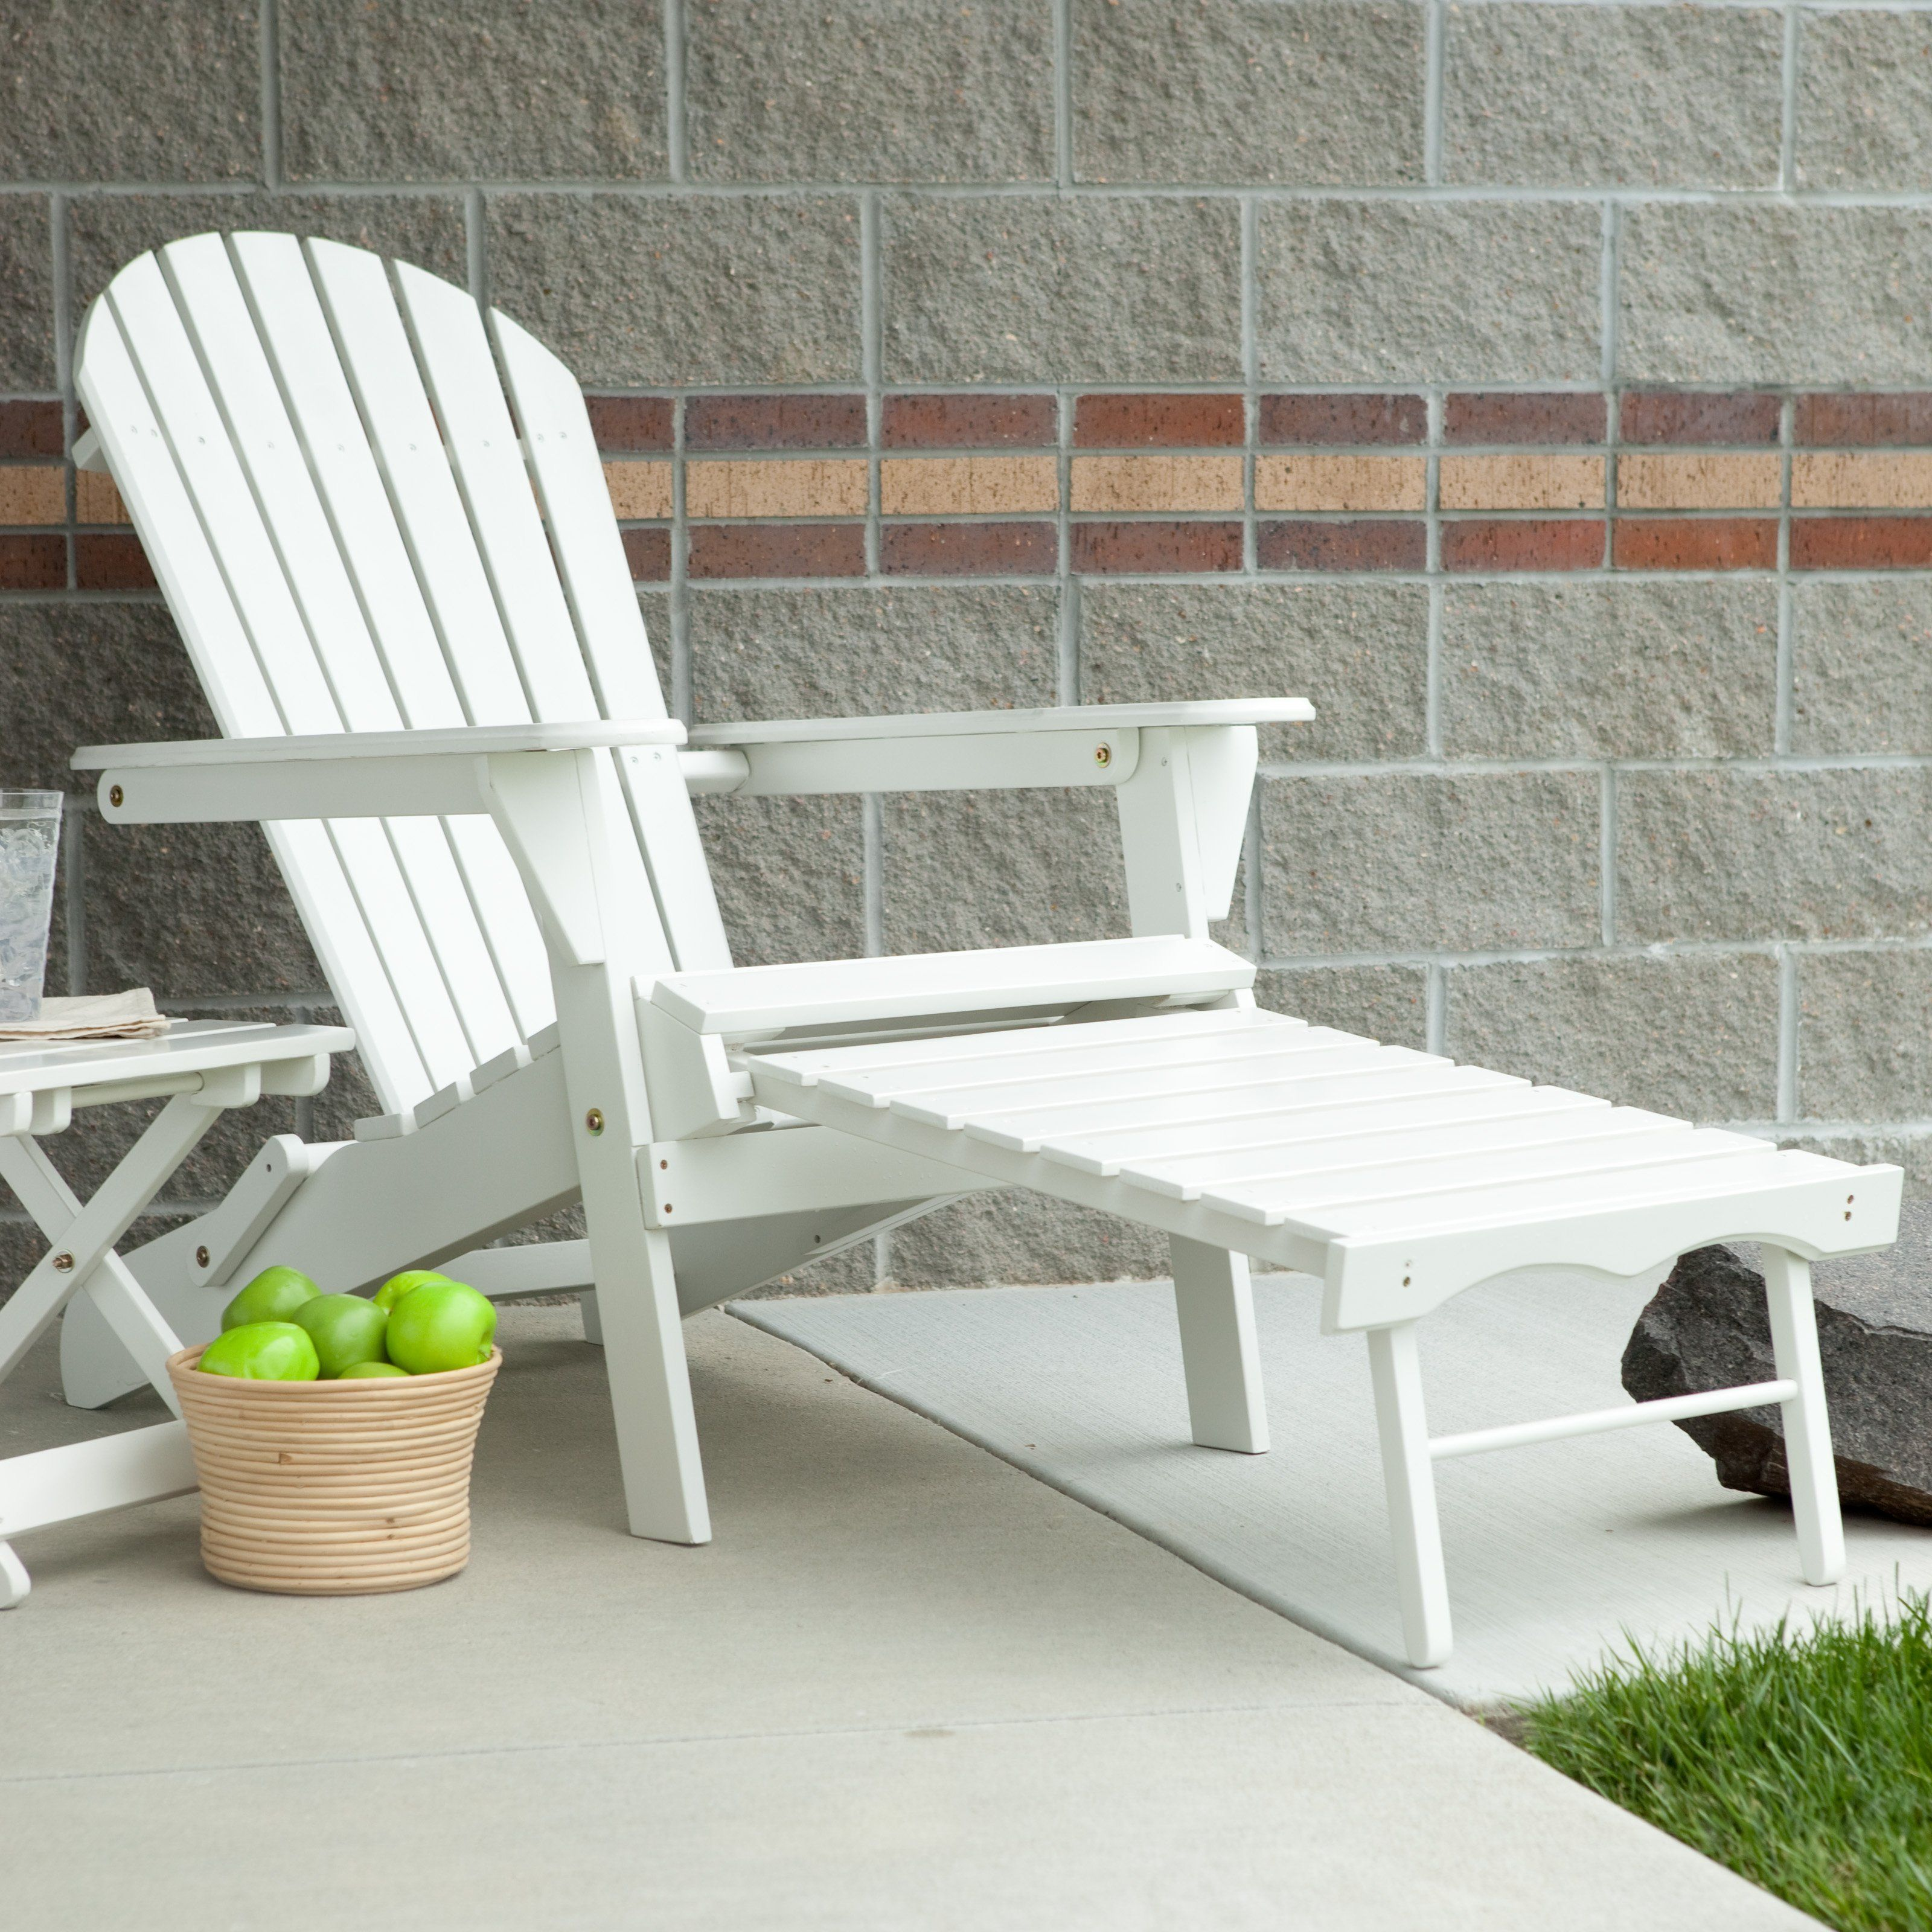 Patio Daddy O Furniture: Grand Daddy Oversized Adirondack Chair With Pull Out